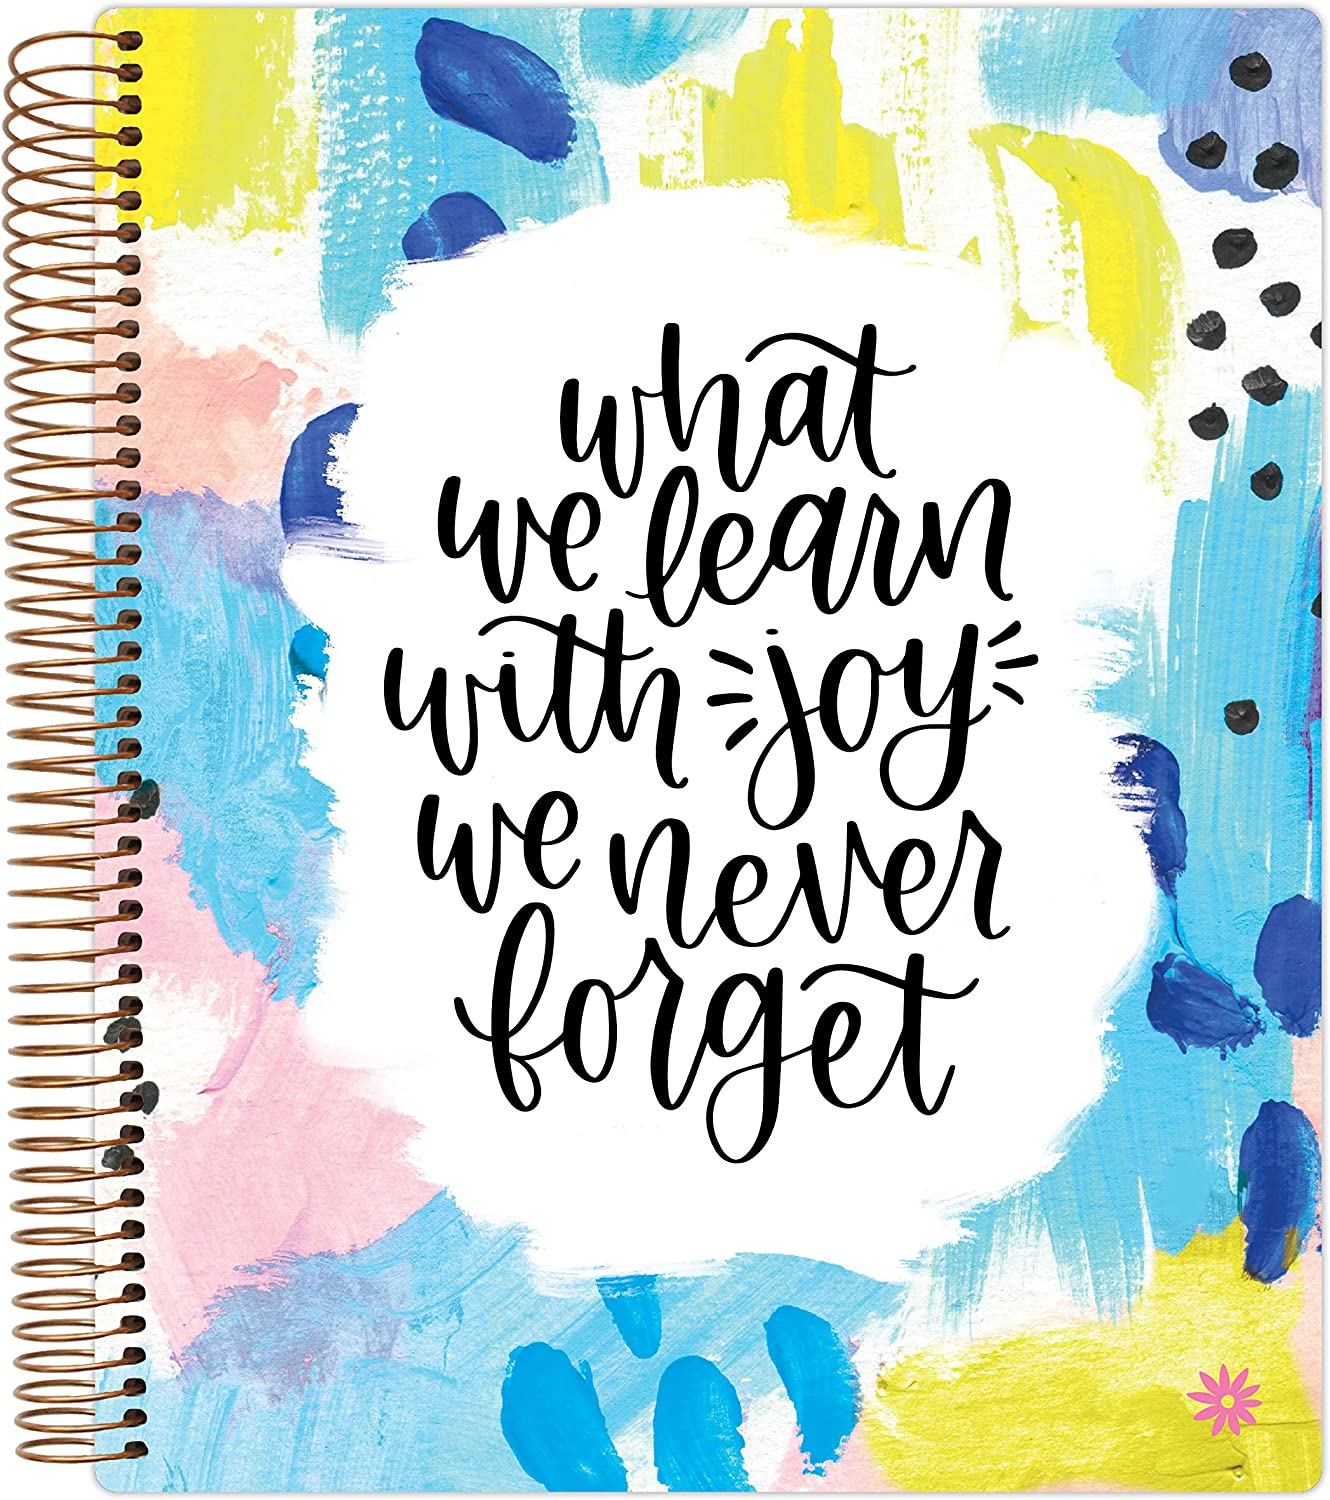 bloom daily planners New Undated Academic Year Teacher Planner & Calendar - Lesson Plan Organizer Book with New Frosted Cover (9